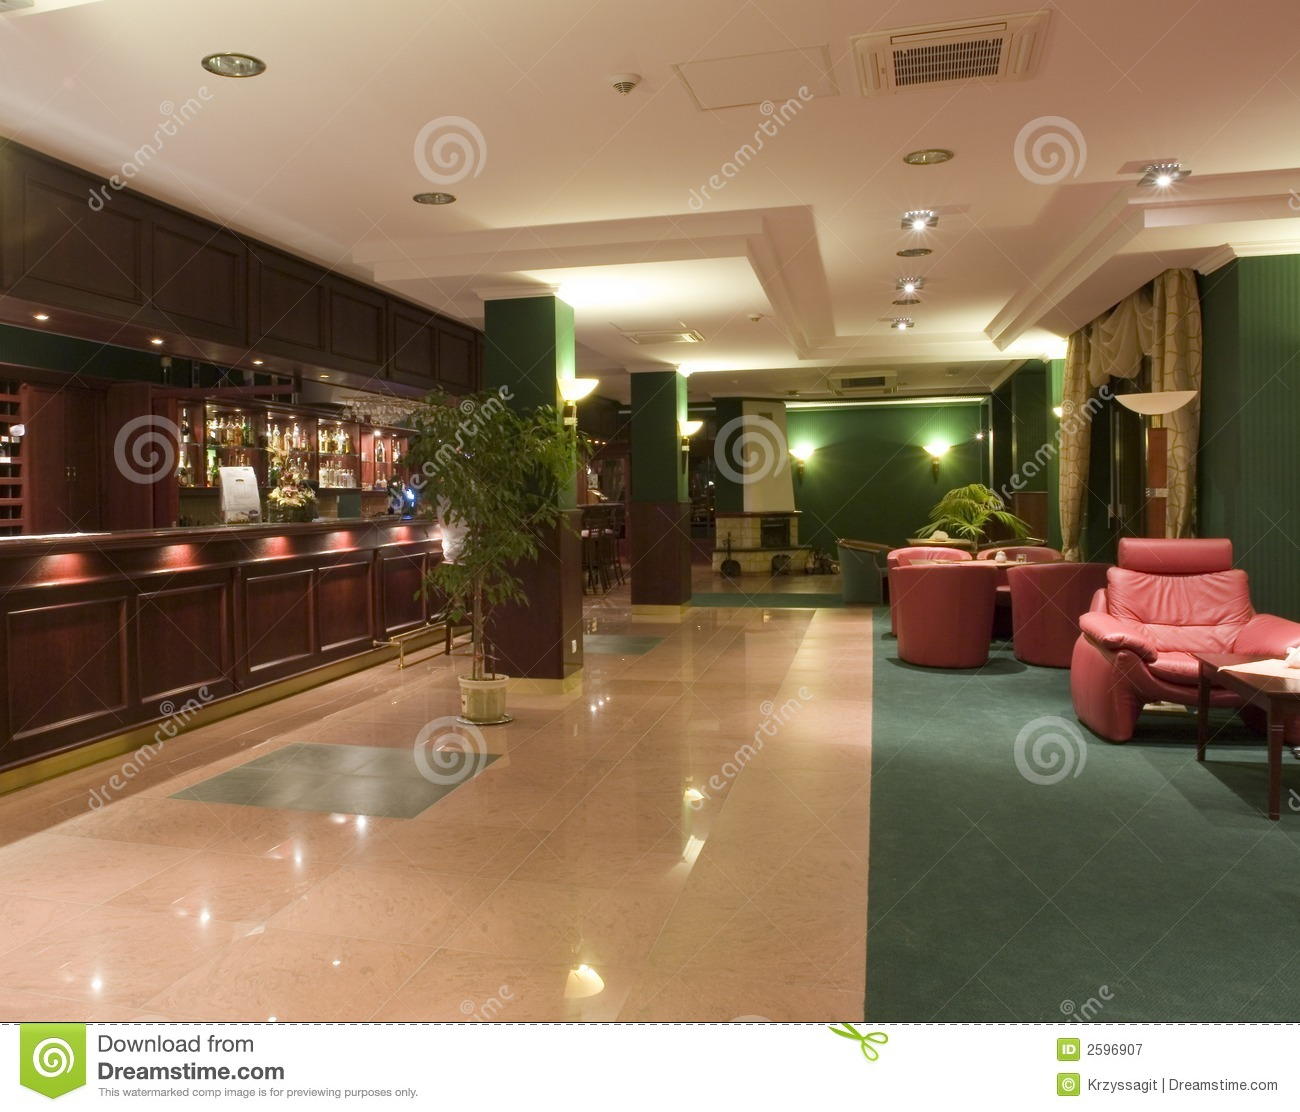 Modern hotel room interior stock photo image 18197840 - Modern Hotel Lobby Interior Royalty Free Stock Photography